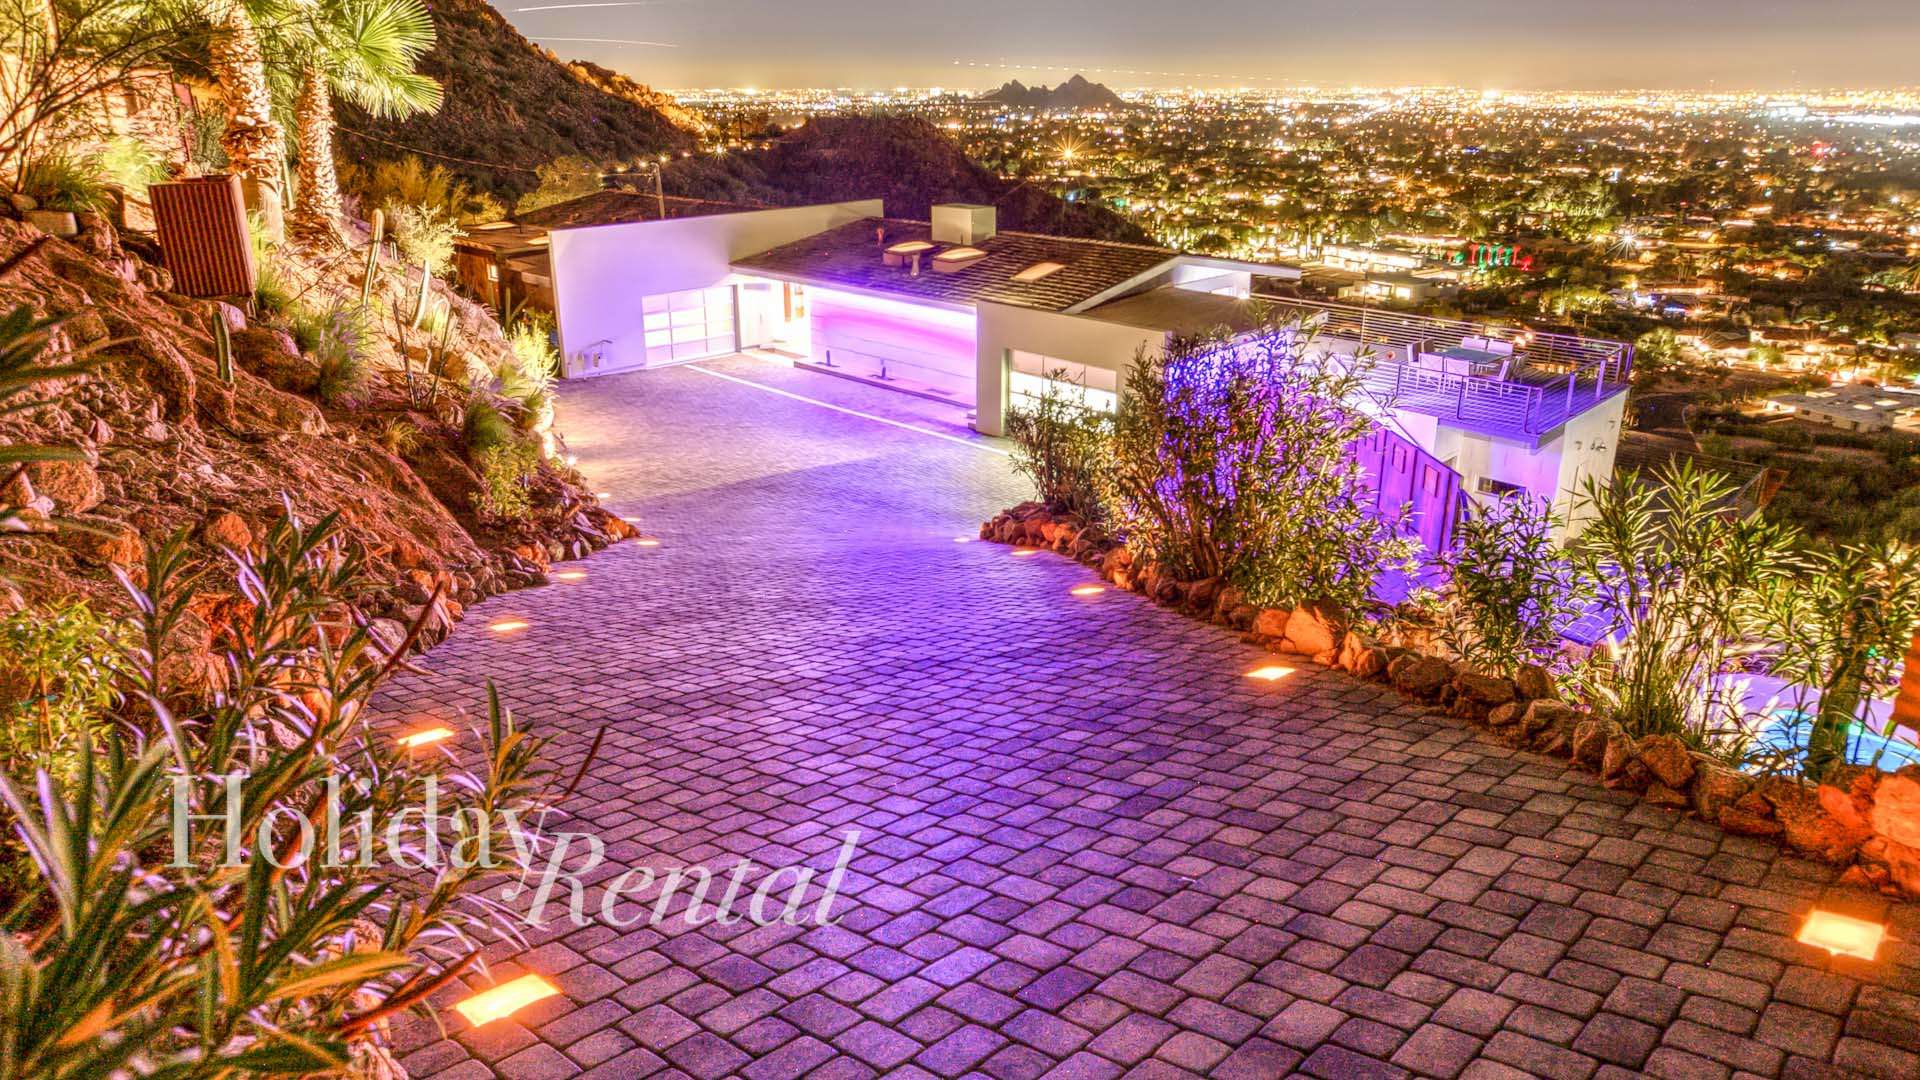 Amazing Views from on top Camelback! City Lights Old Town Scottsdale